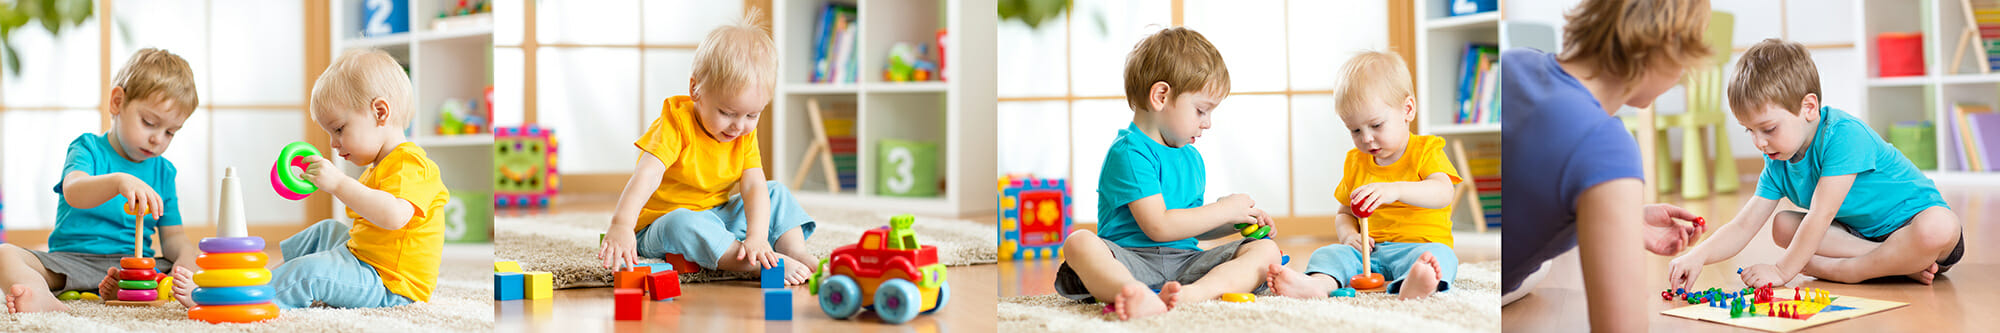 childrens portrait photography tips playing toys toddler